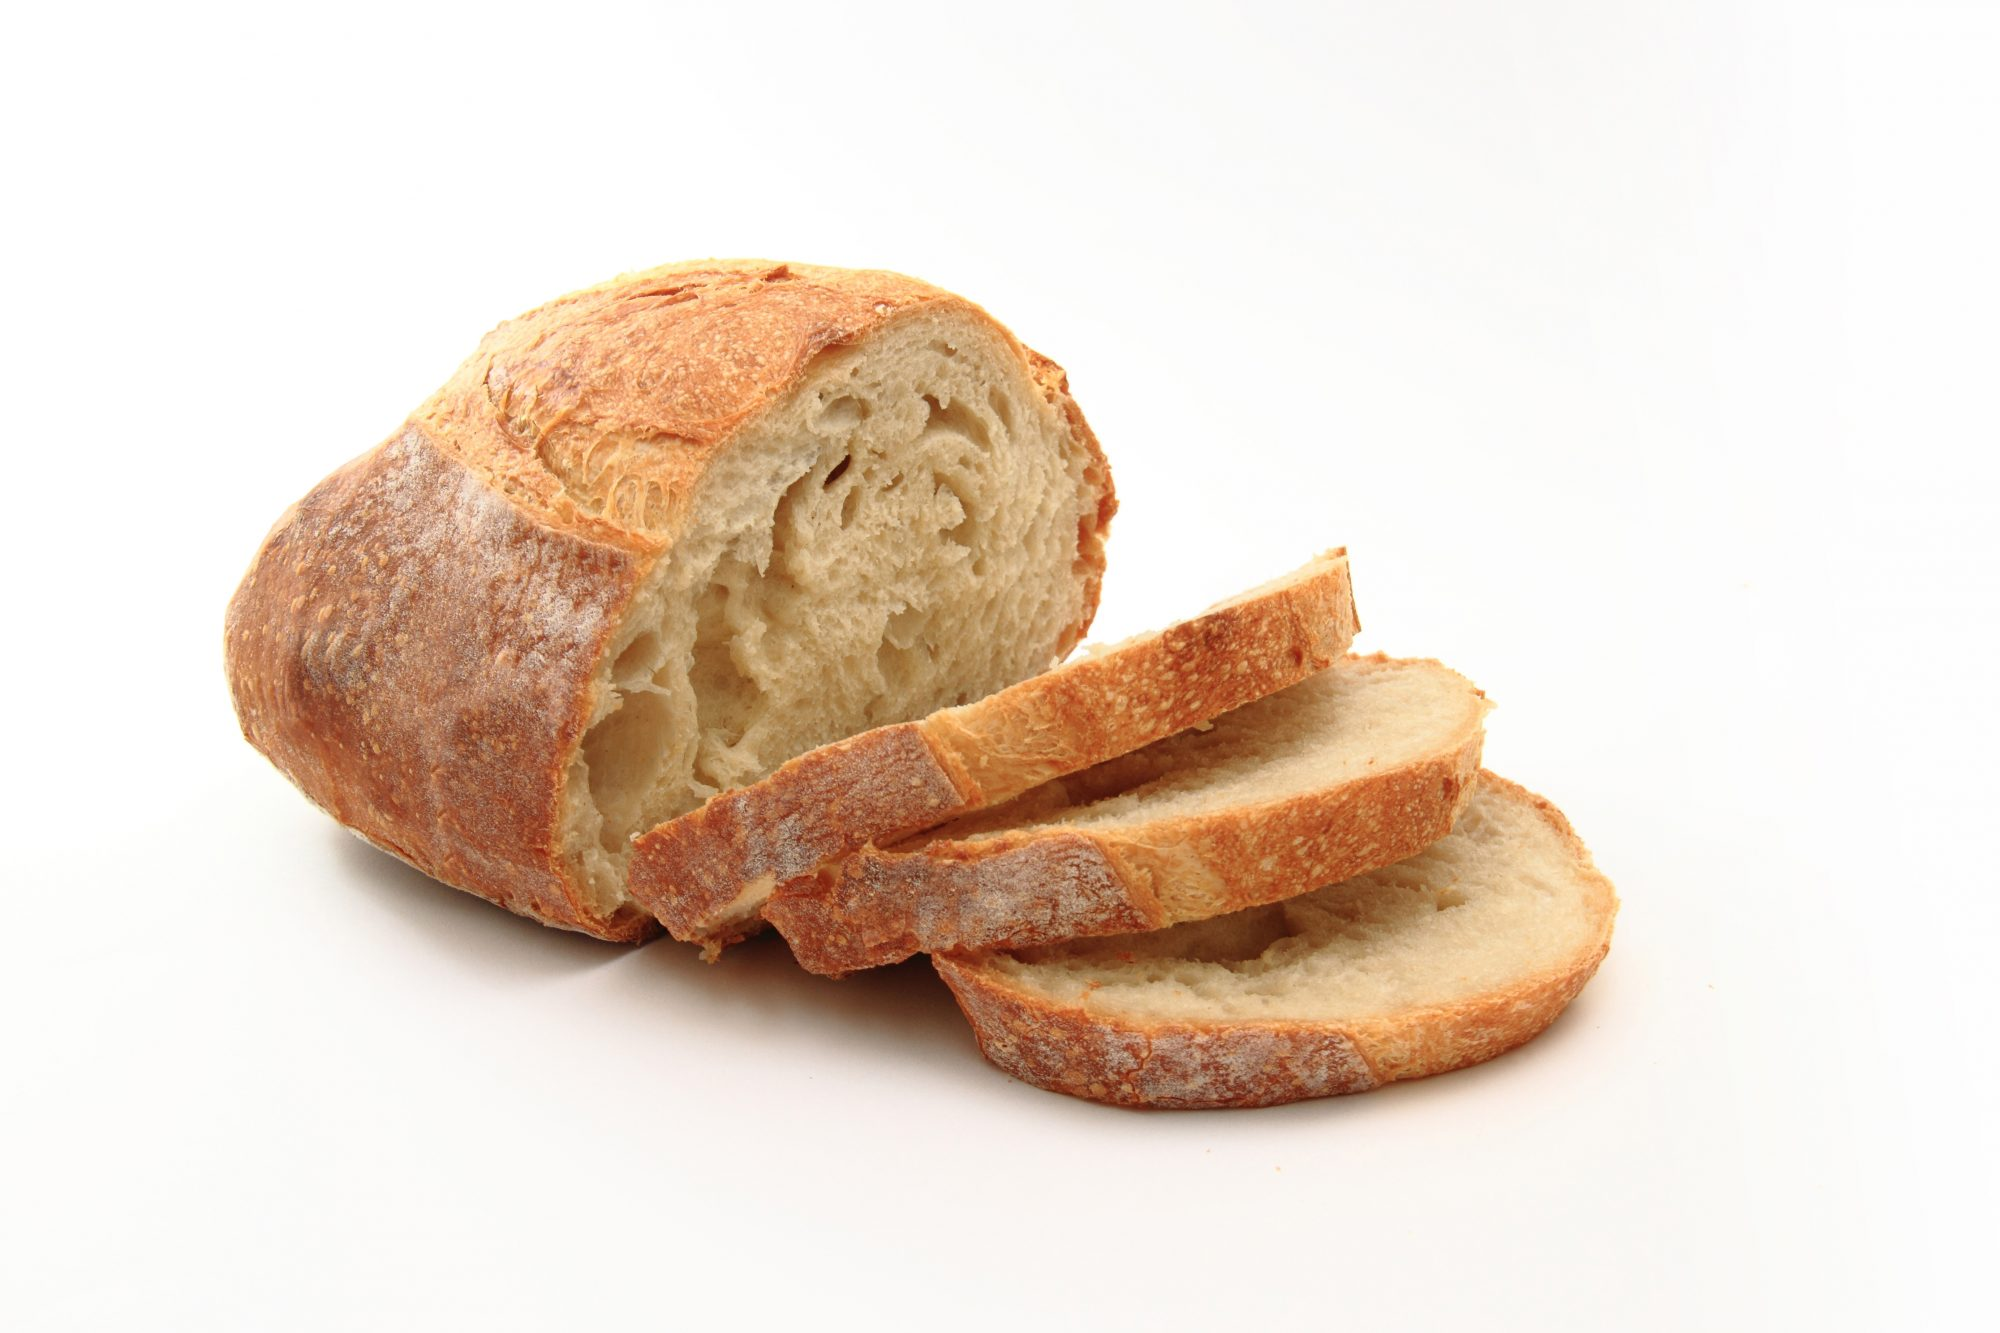 Getty Bread Loaf Image